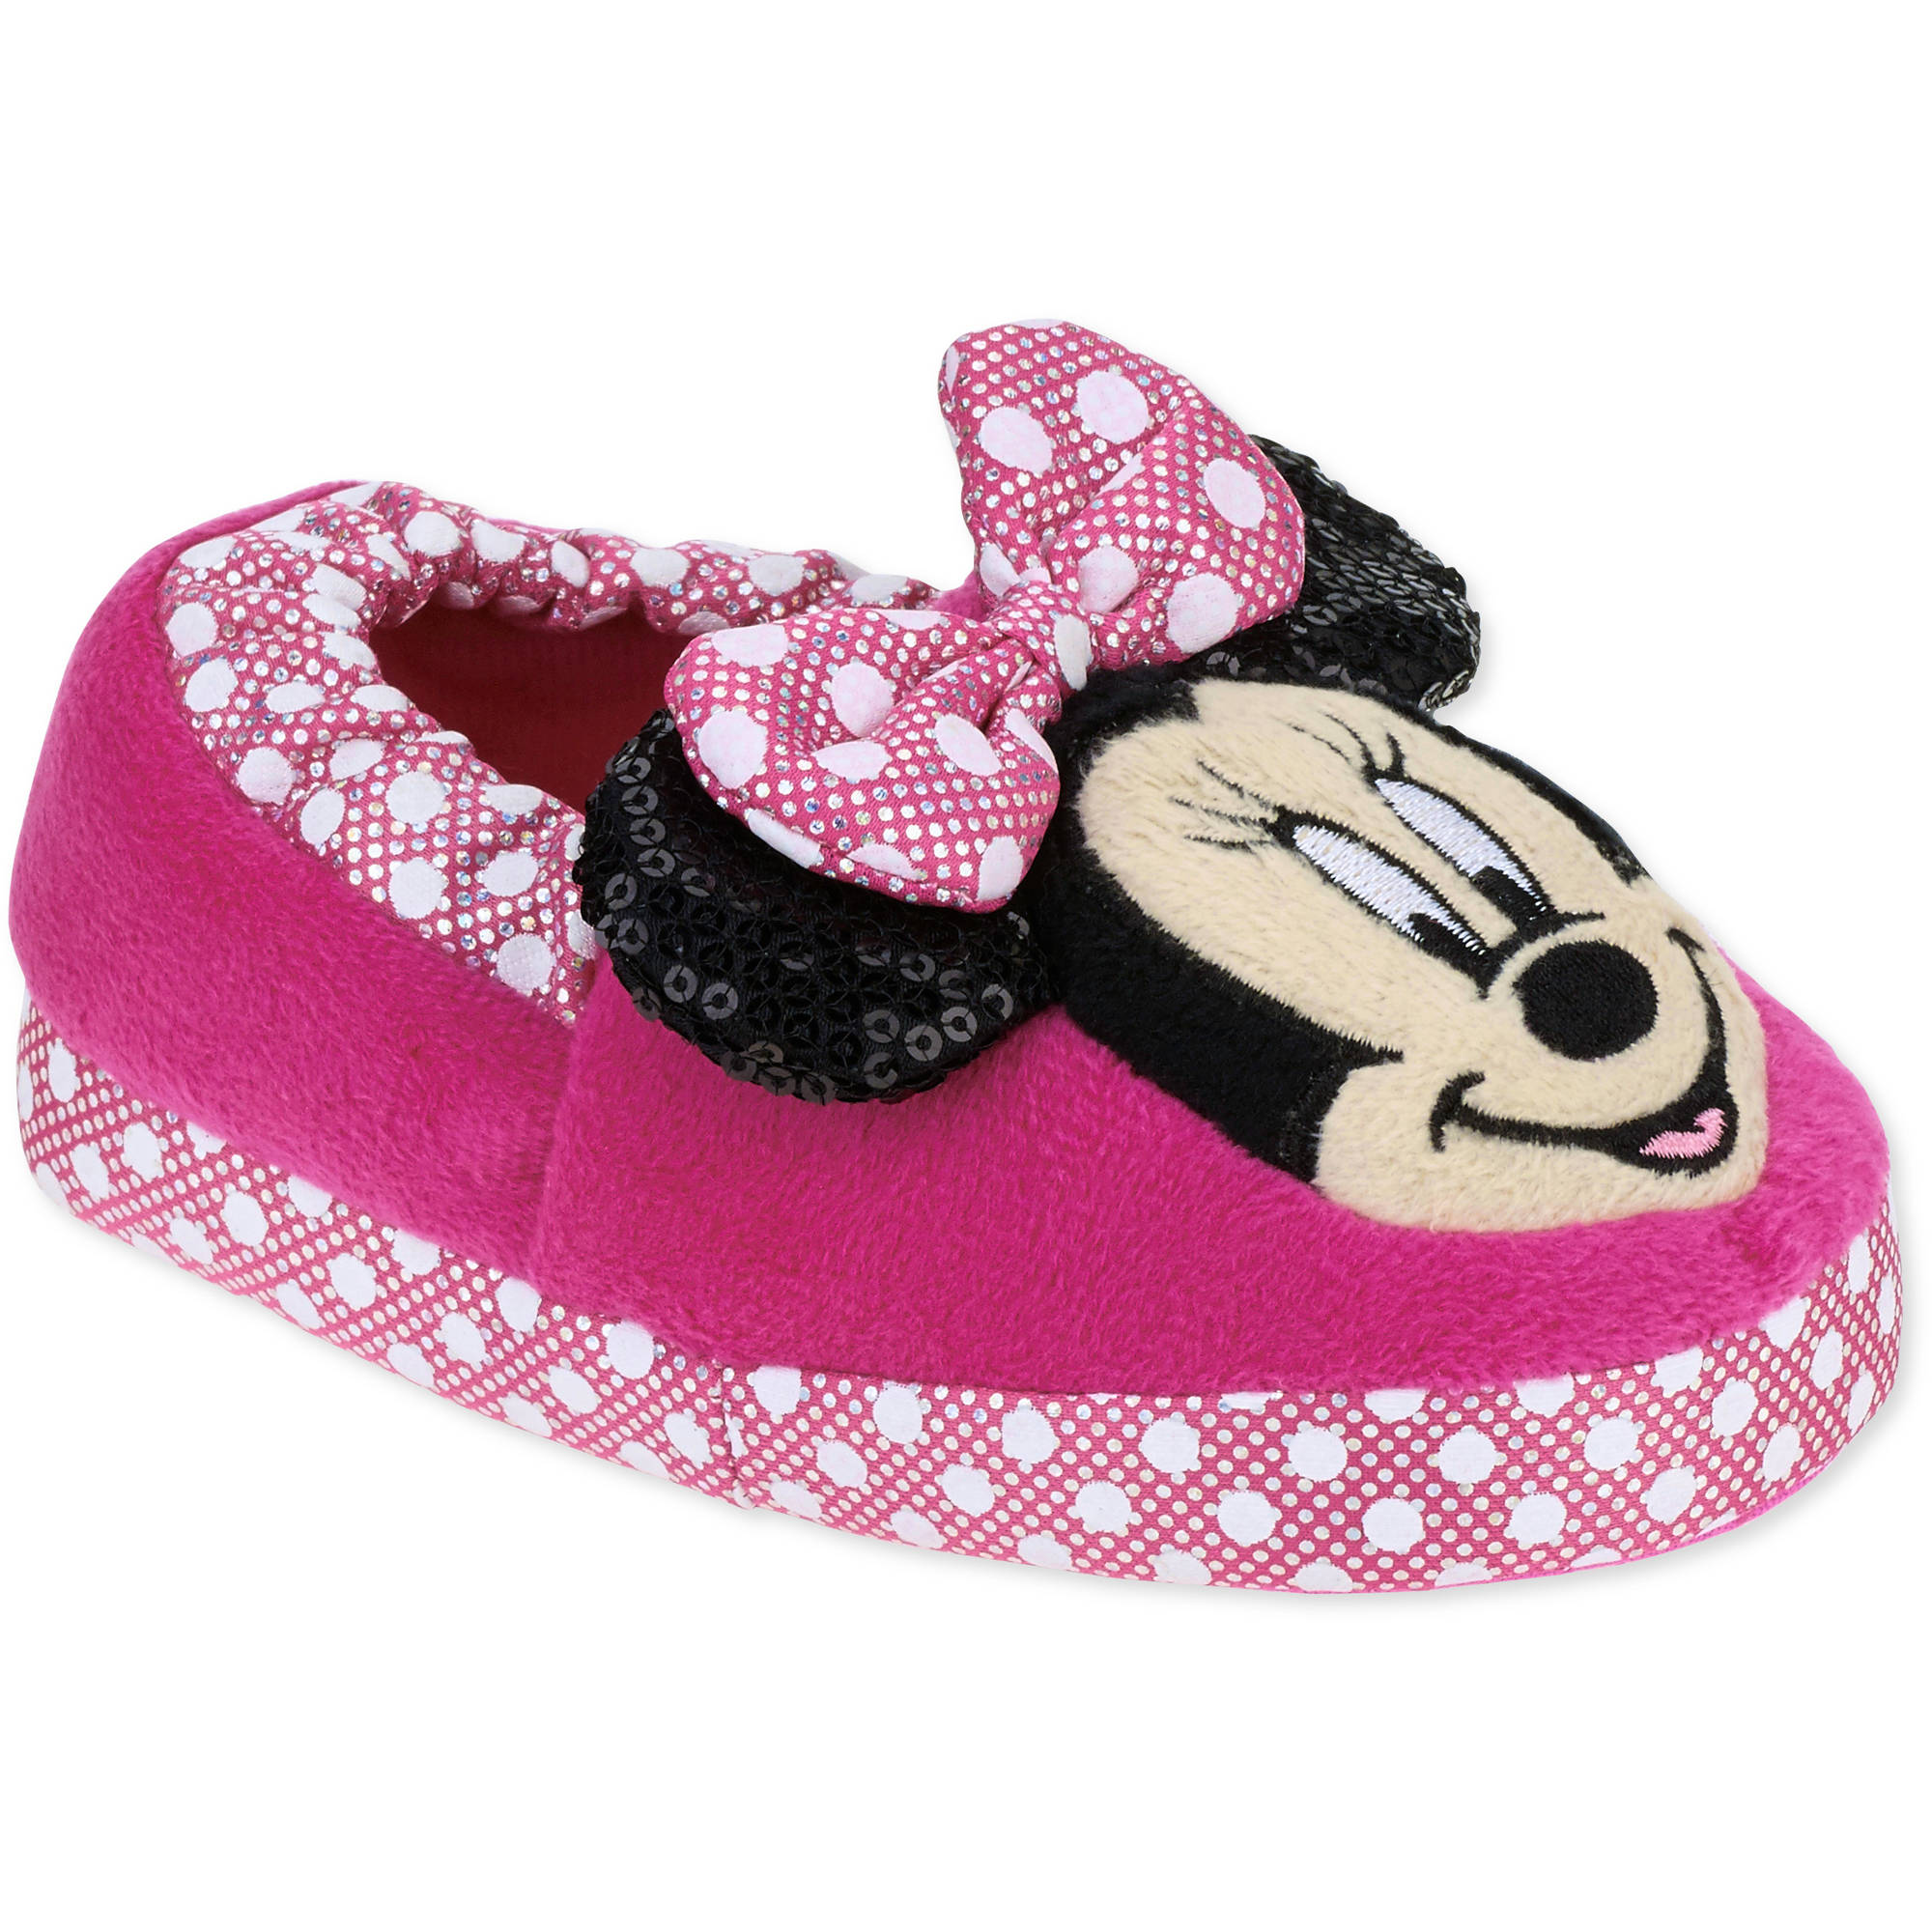 Minnie Mouse Toddler Girls' Slippers